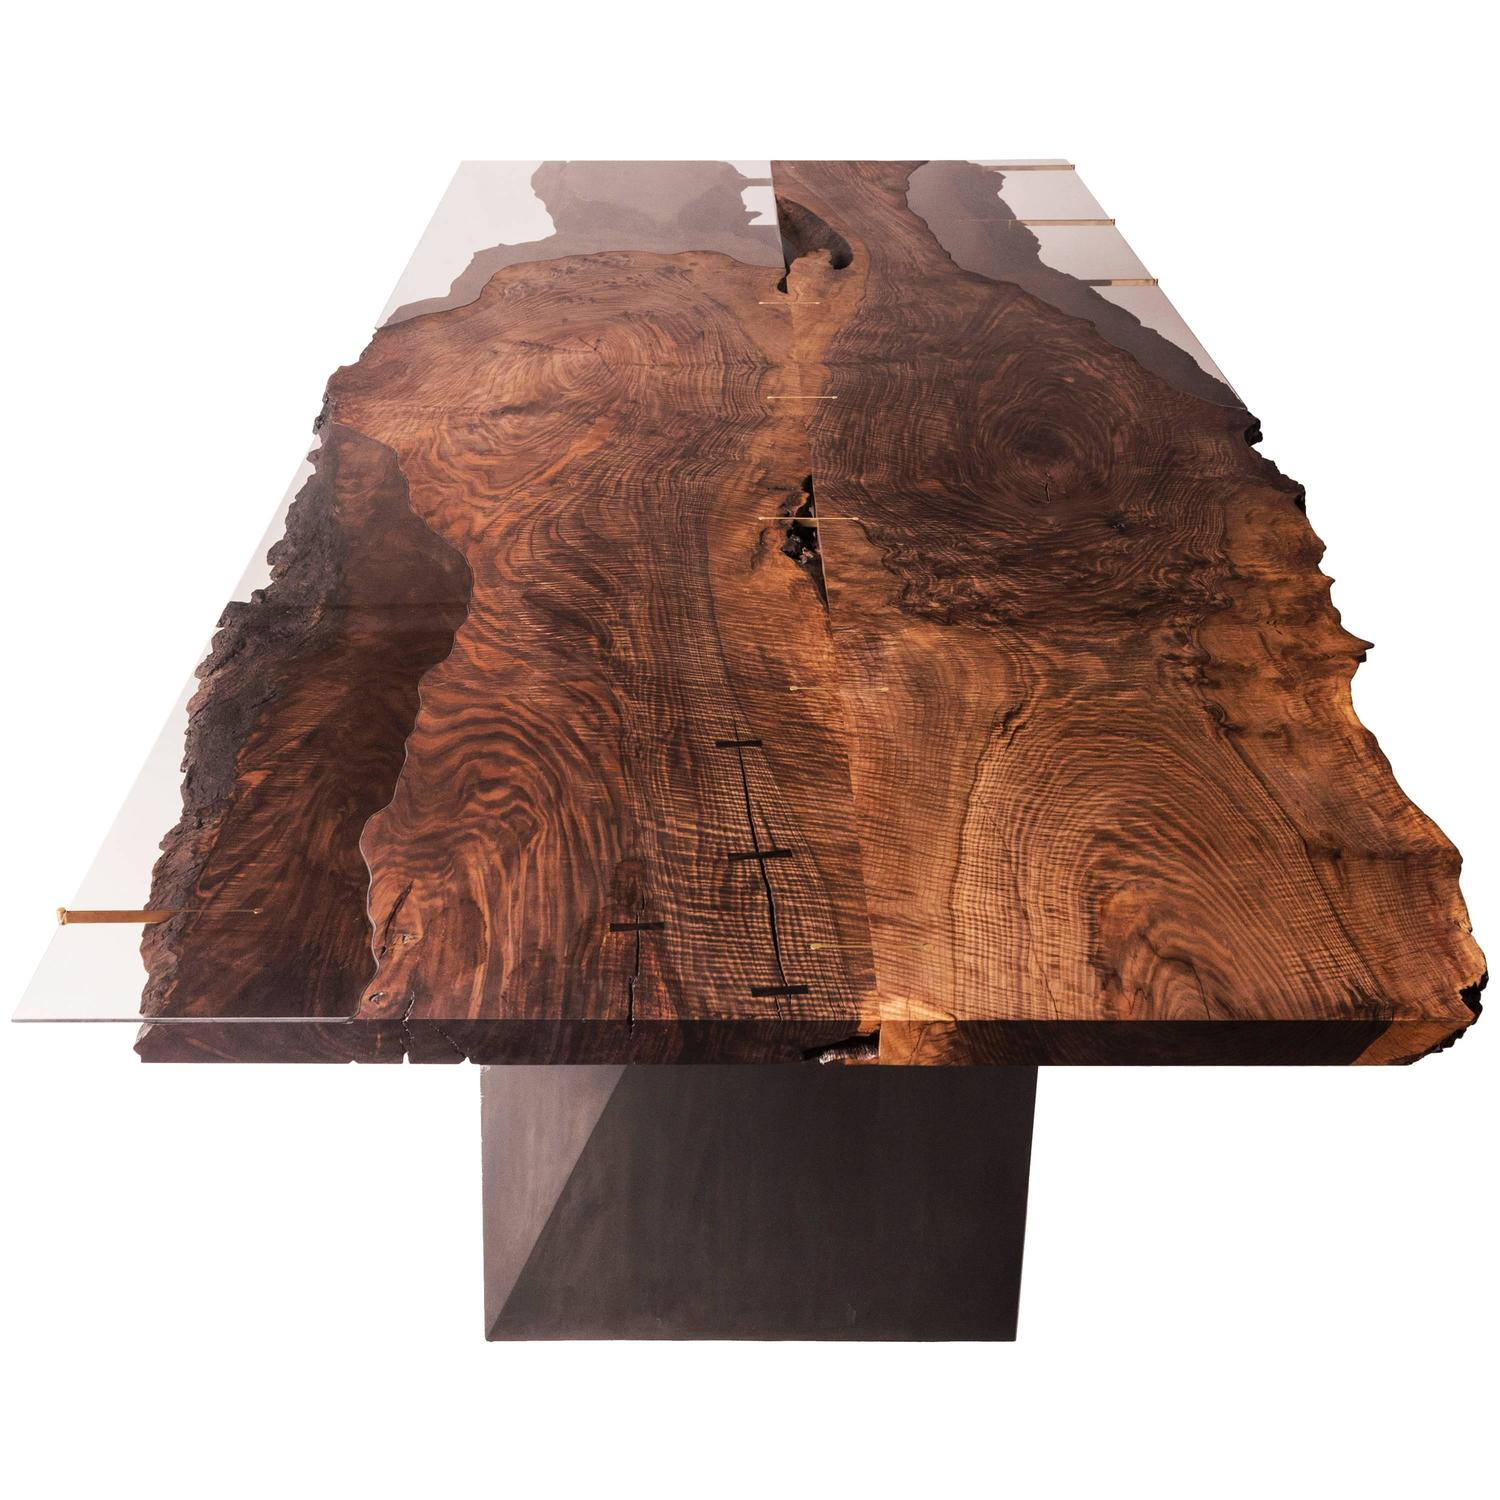 Modern Live Edge Bastogne Walnut And Gl Dining Table On Blackened Steel Base For At 1stdibs